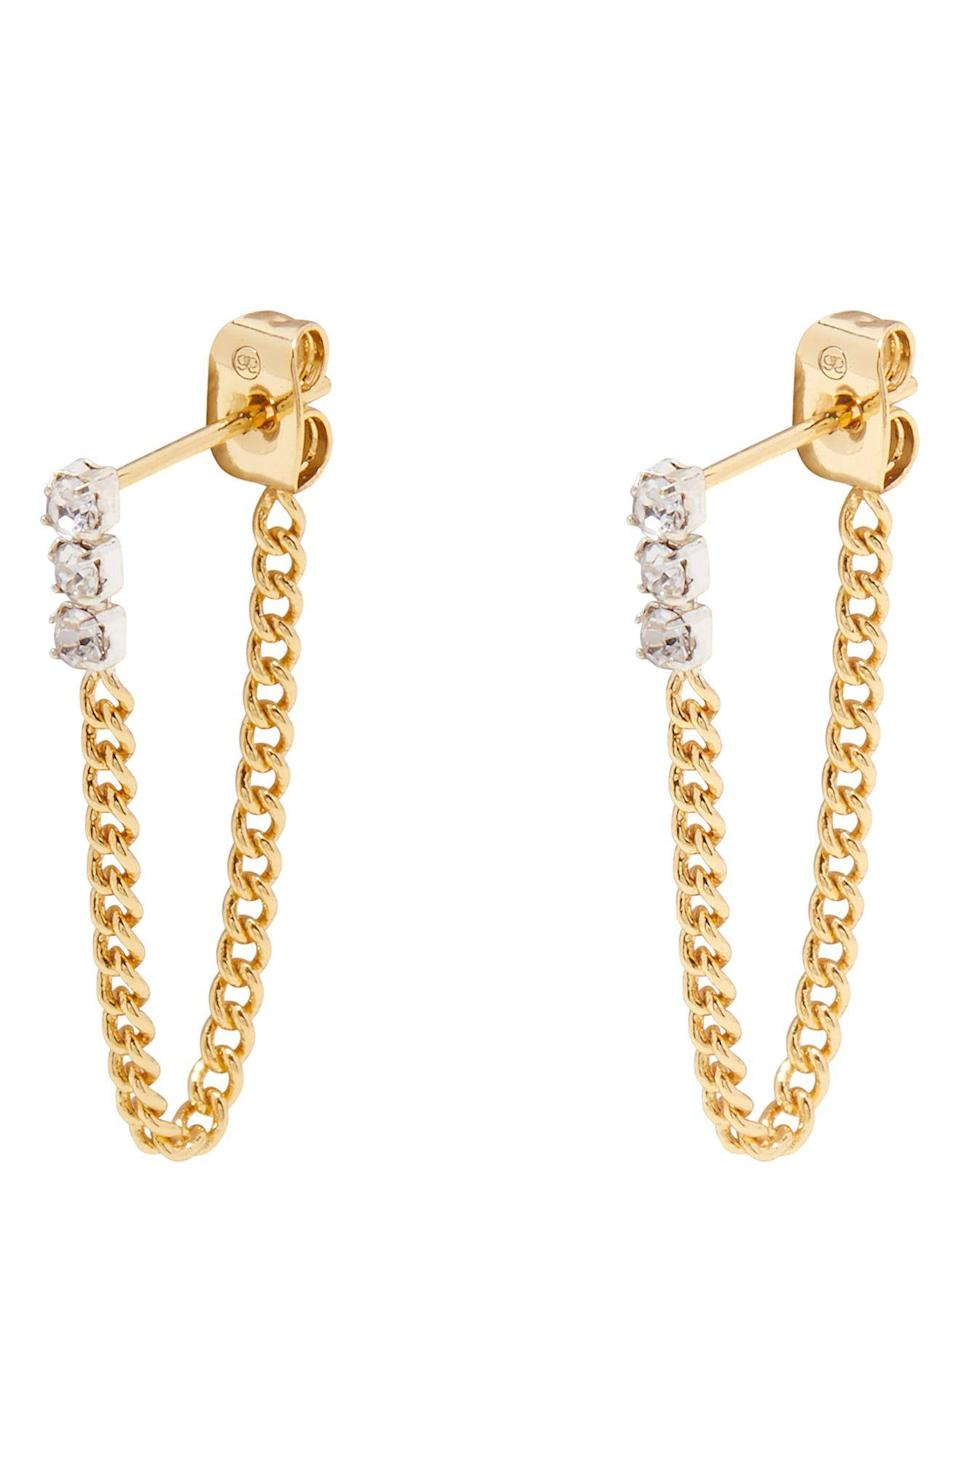 """<p><strong>Gorjana</strong></p><p>nordstrom.com</p><p><strong>$45.00</strong></p><p><a href=""""https://go.redirectingat.com?id=74968X1596630&url=https%3A%2F%2Fwww.nordstrom.com%2Fs%2Fgorjana-wilder-shimmer-chain-huggie-hoop-earrings%2F5781013&sref=https%3A%2F%2Fwww.oprahmag.com%2Fstyle%2Fg32948480%2Fbest-earrings-for-sensitive-ears%2F"""" rel=""""nofollow noopener"""" target=""""_blank"""" data-ylk=""""slk:SHOP NOW"""" class=""""link rapid-noclick-resp"""">SHOP NOW</a></p><p>Delicate chains and cubic zirconias prove to be a pretty combo. Because the base metal of this pair is sterling silver, you likely won't have to worry about any irritations if the top 18k gold-plated layer rubs off with time. </p>"""